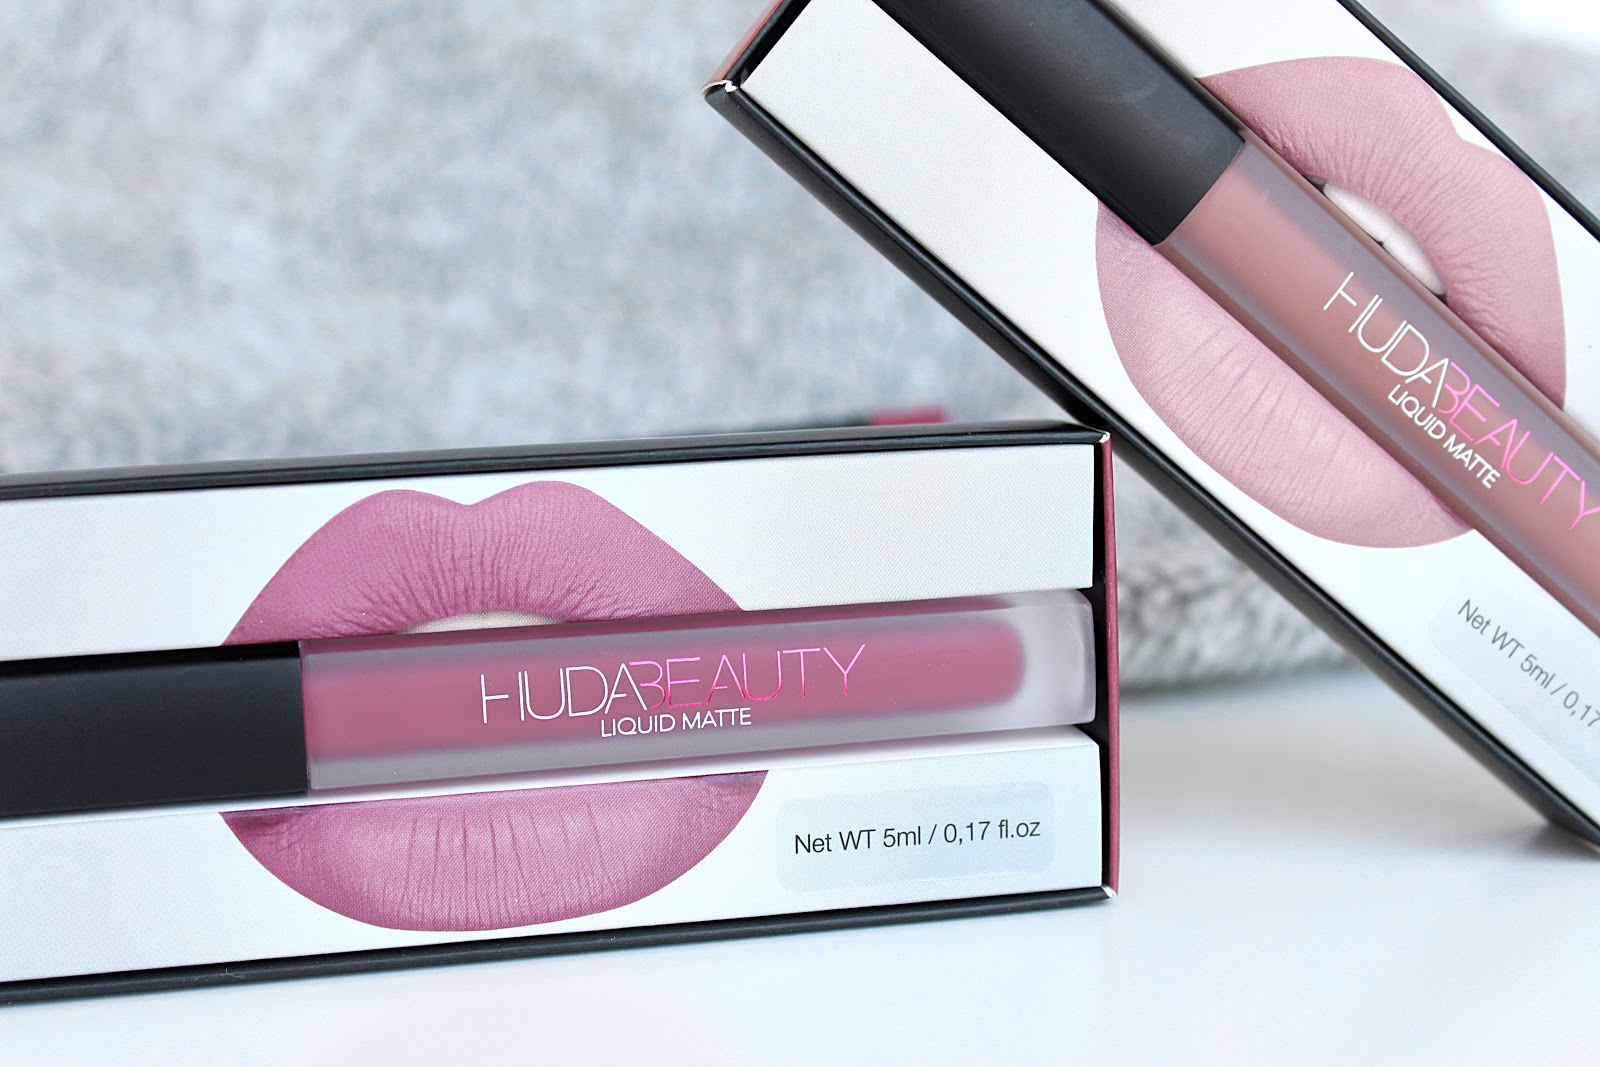 Huda Beauty Lip Contour & Liquid Matte Lipstick Review